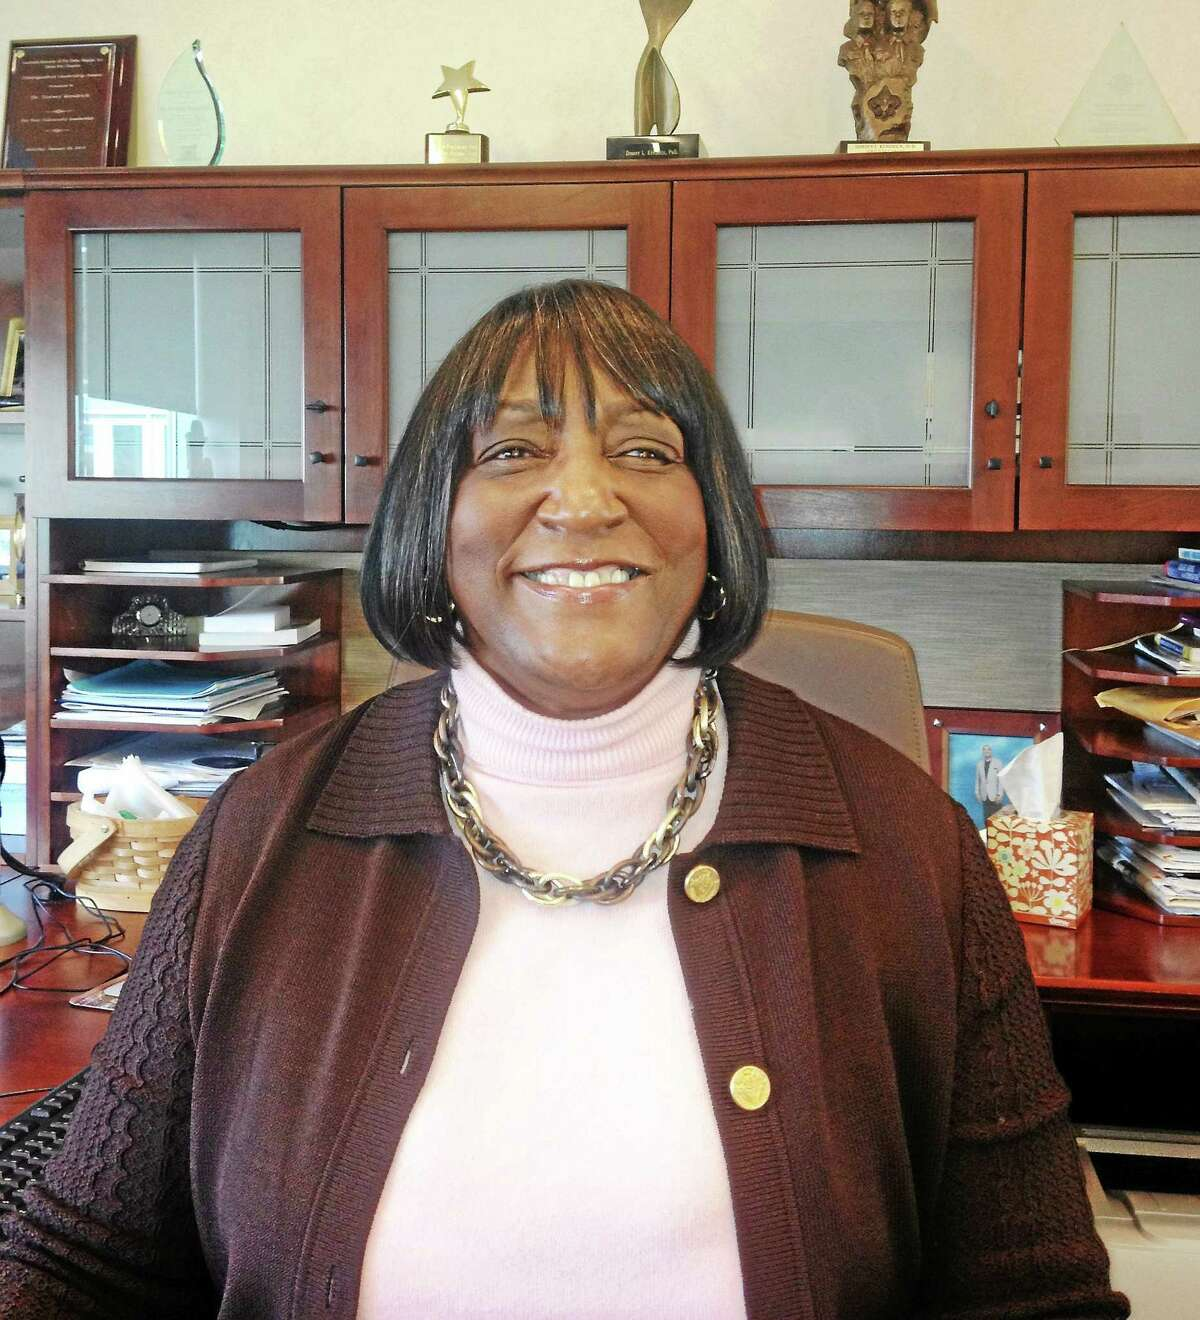 (Mary O'Leary - New Haven Register) Dorsey Kendrick president of Gateway Community College in New Haven